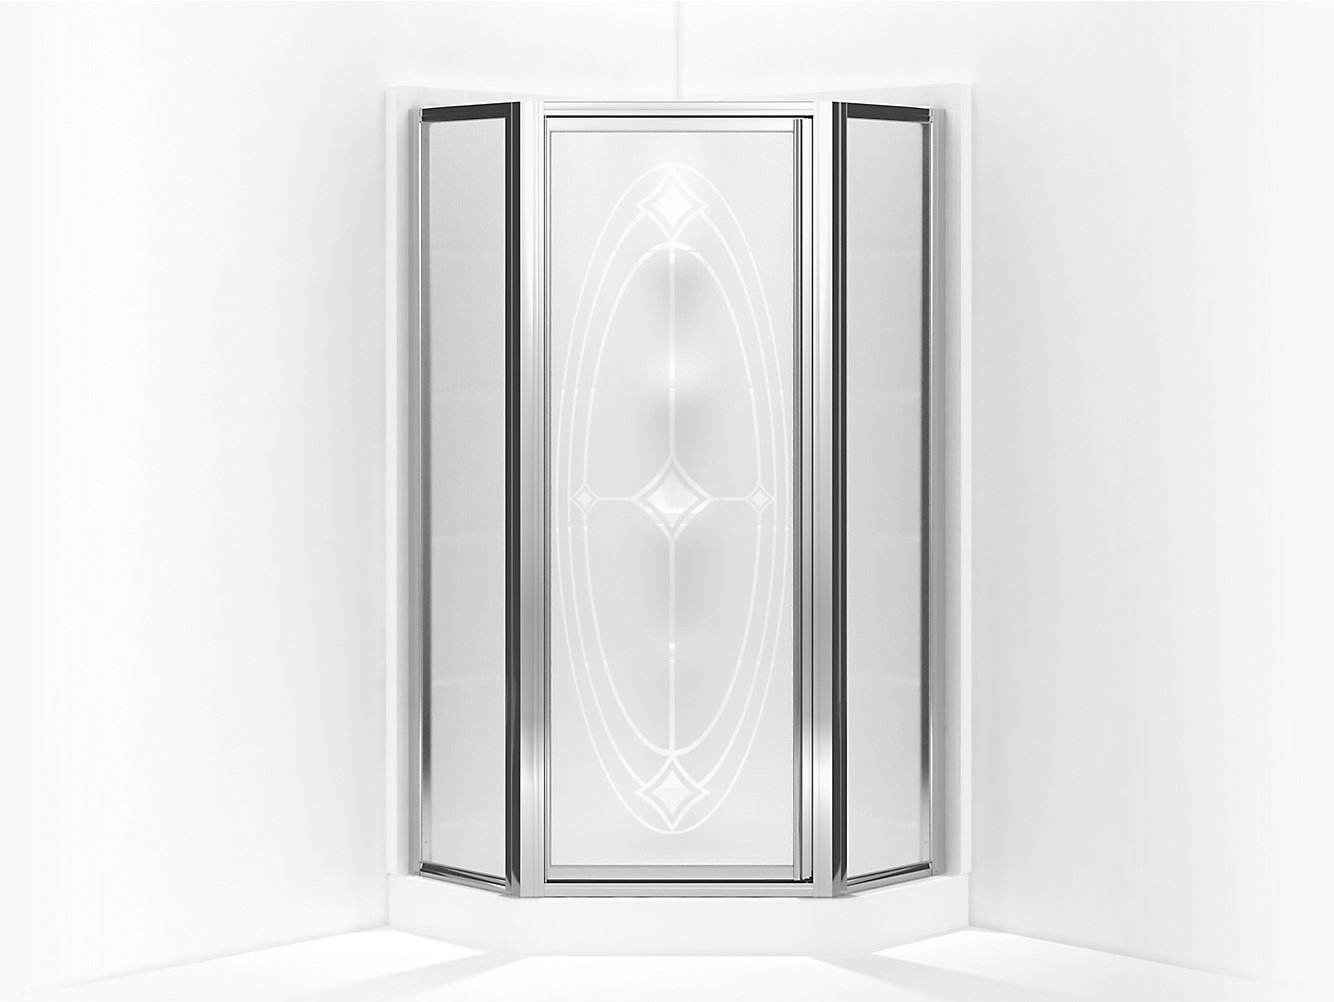 Intrigue Framed Neo Angle Corner Shower Door 15 13 16 X 27 9 16 X 15 13 16 X 72 H Sp2277a 38s Sterling